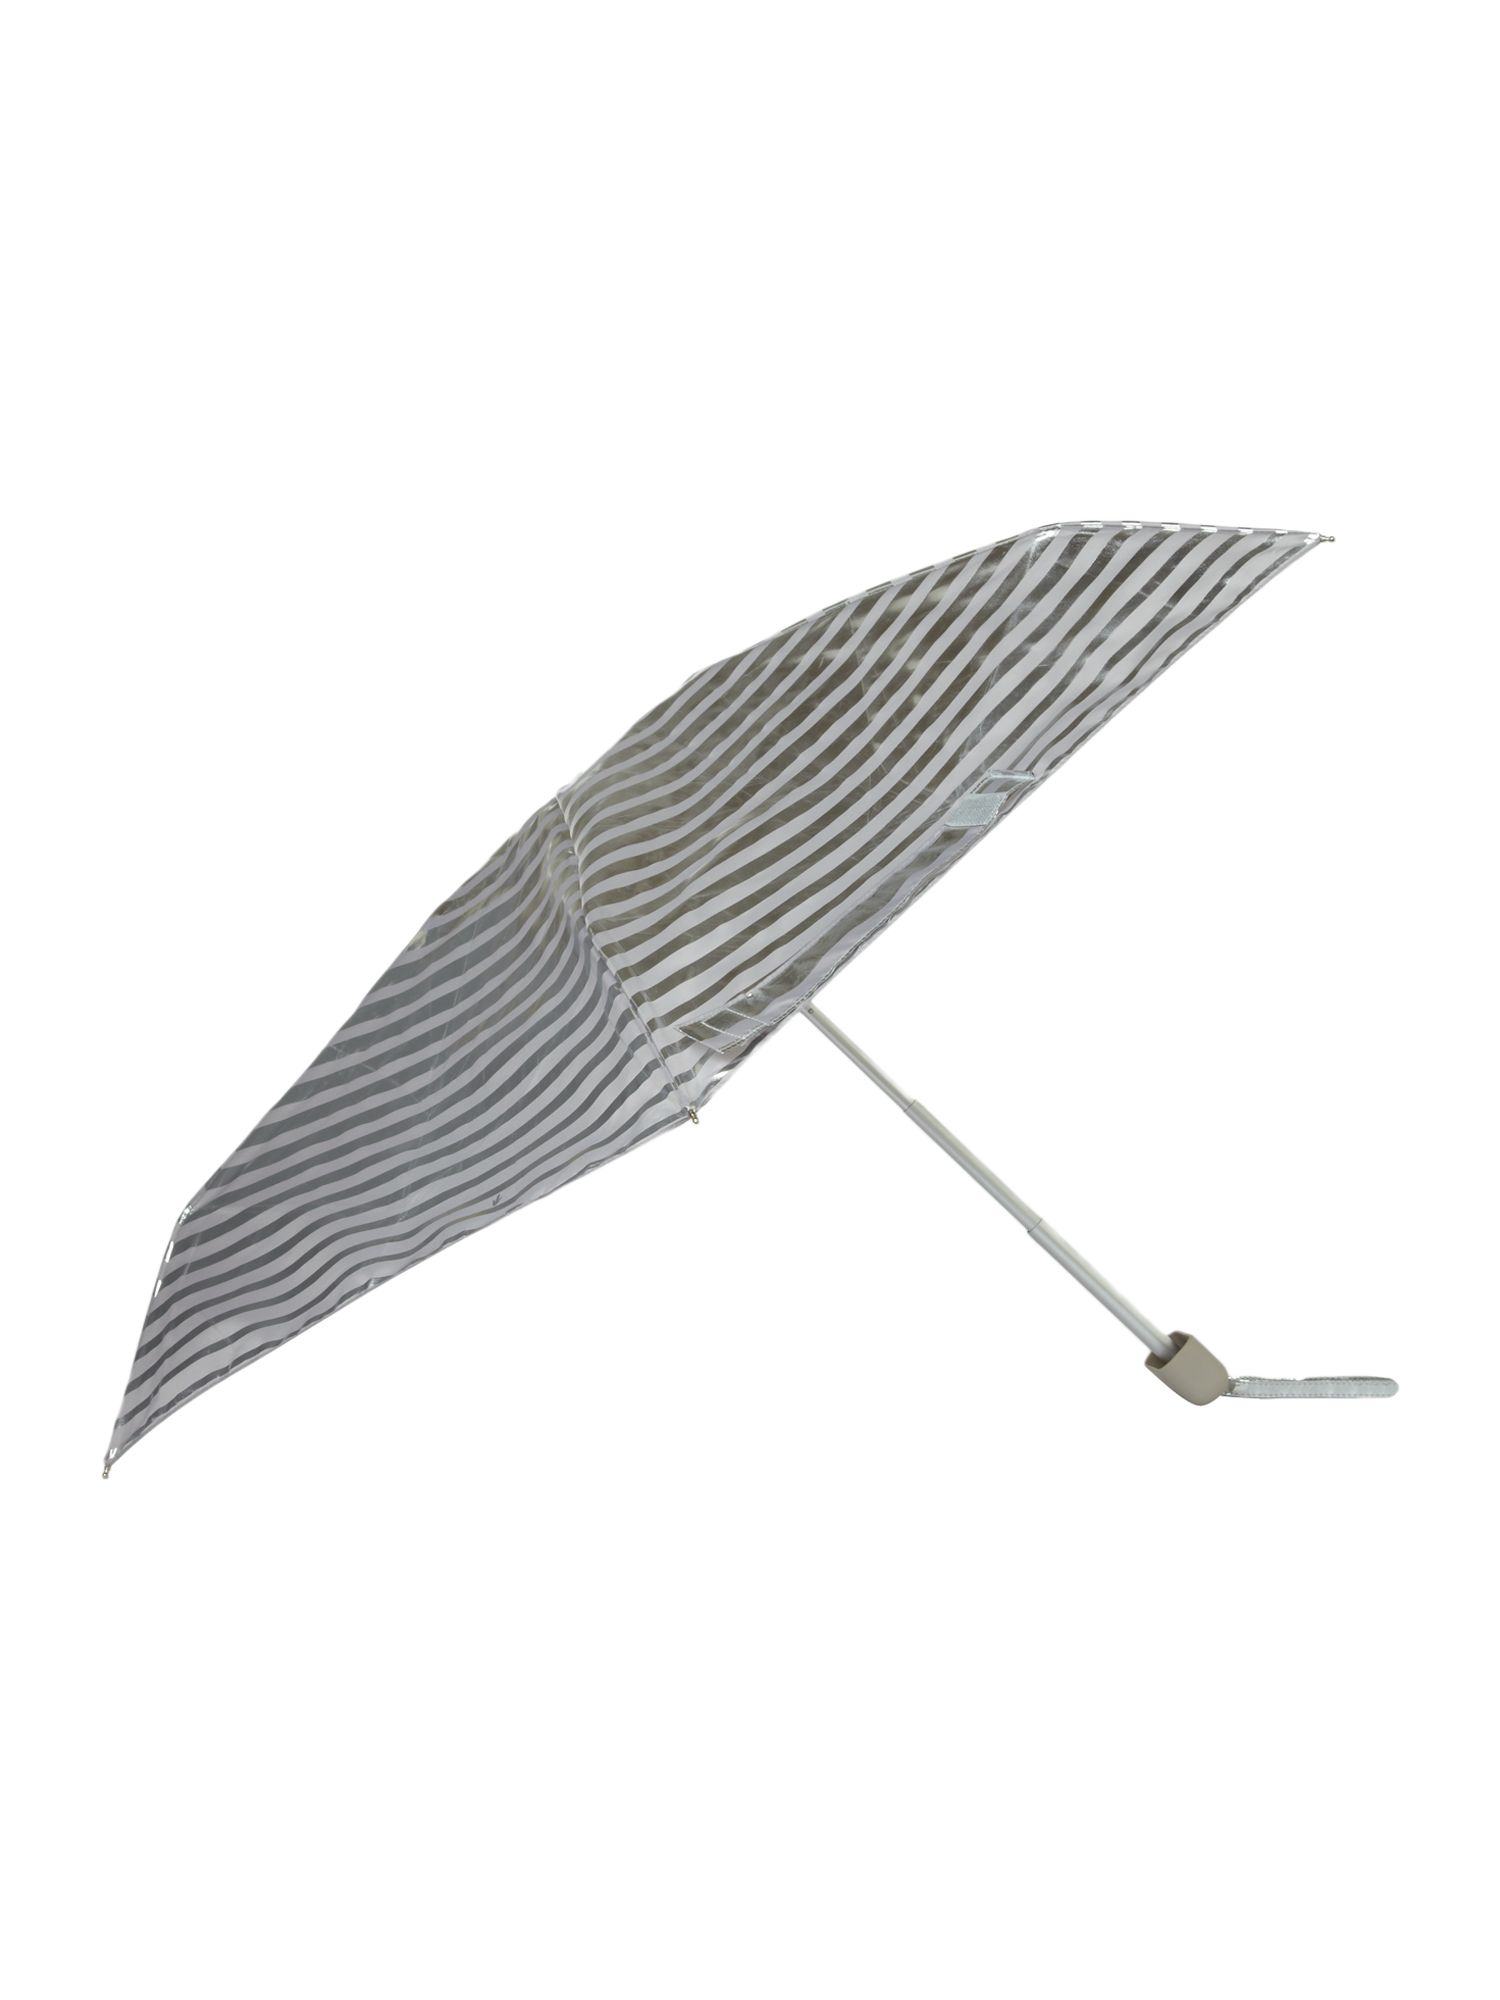 Silver shadow striped tiny umbrella